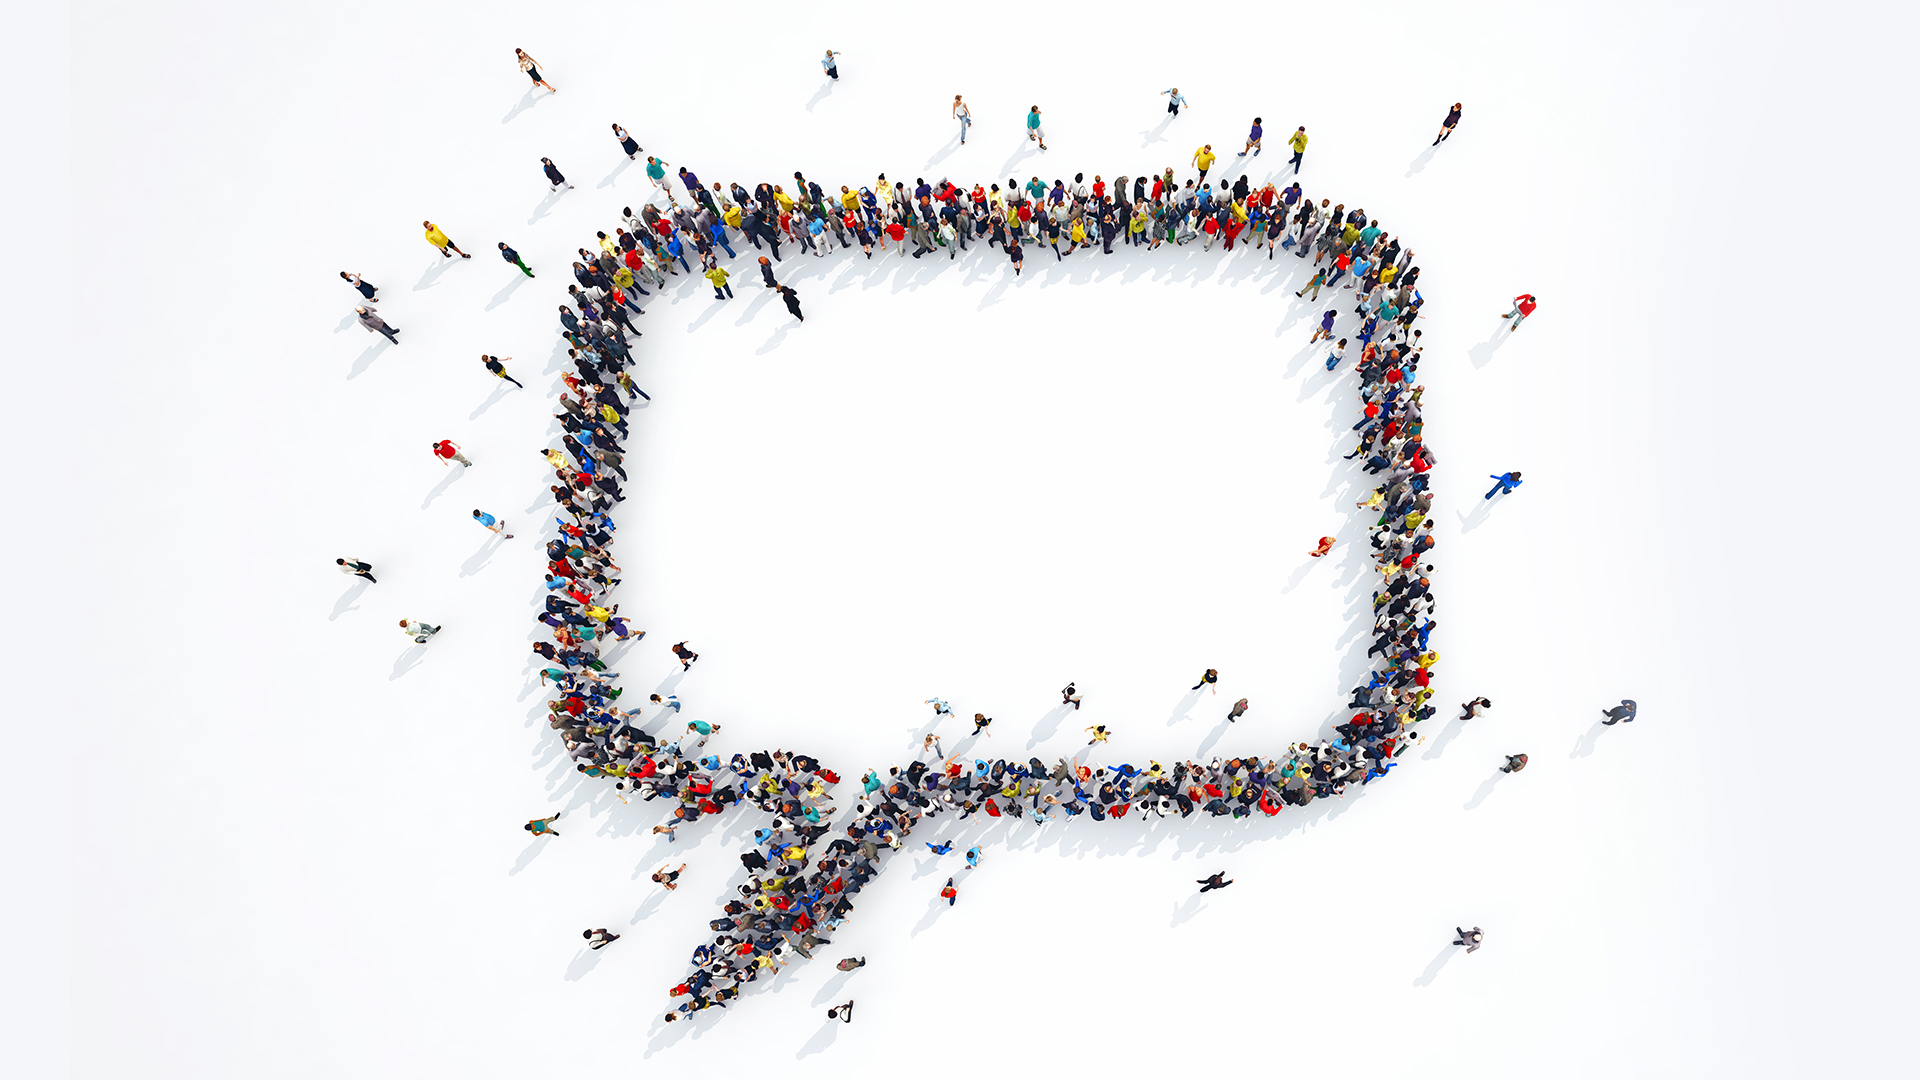 Image depicting people forming a 'message' sign.